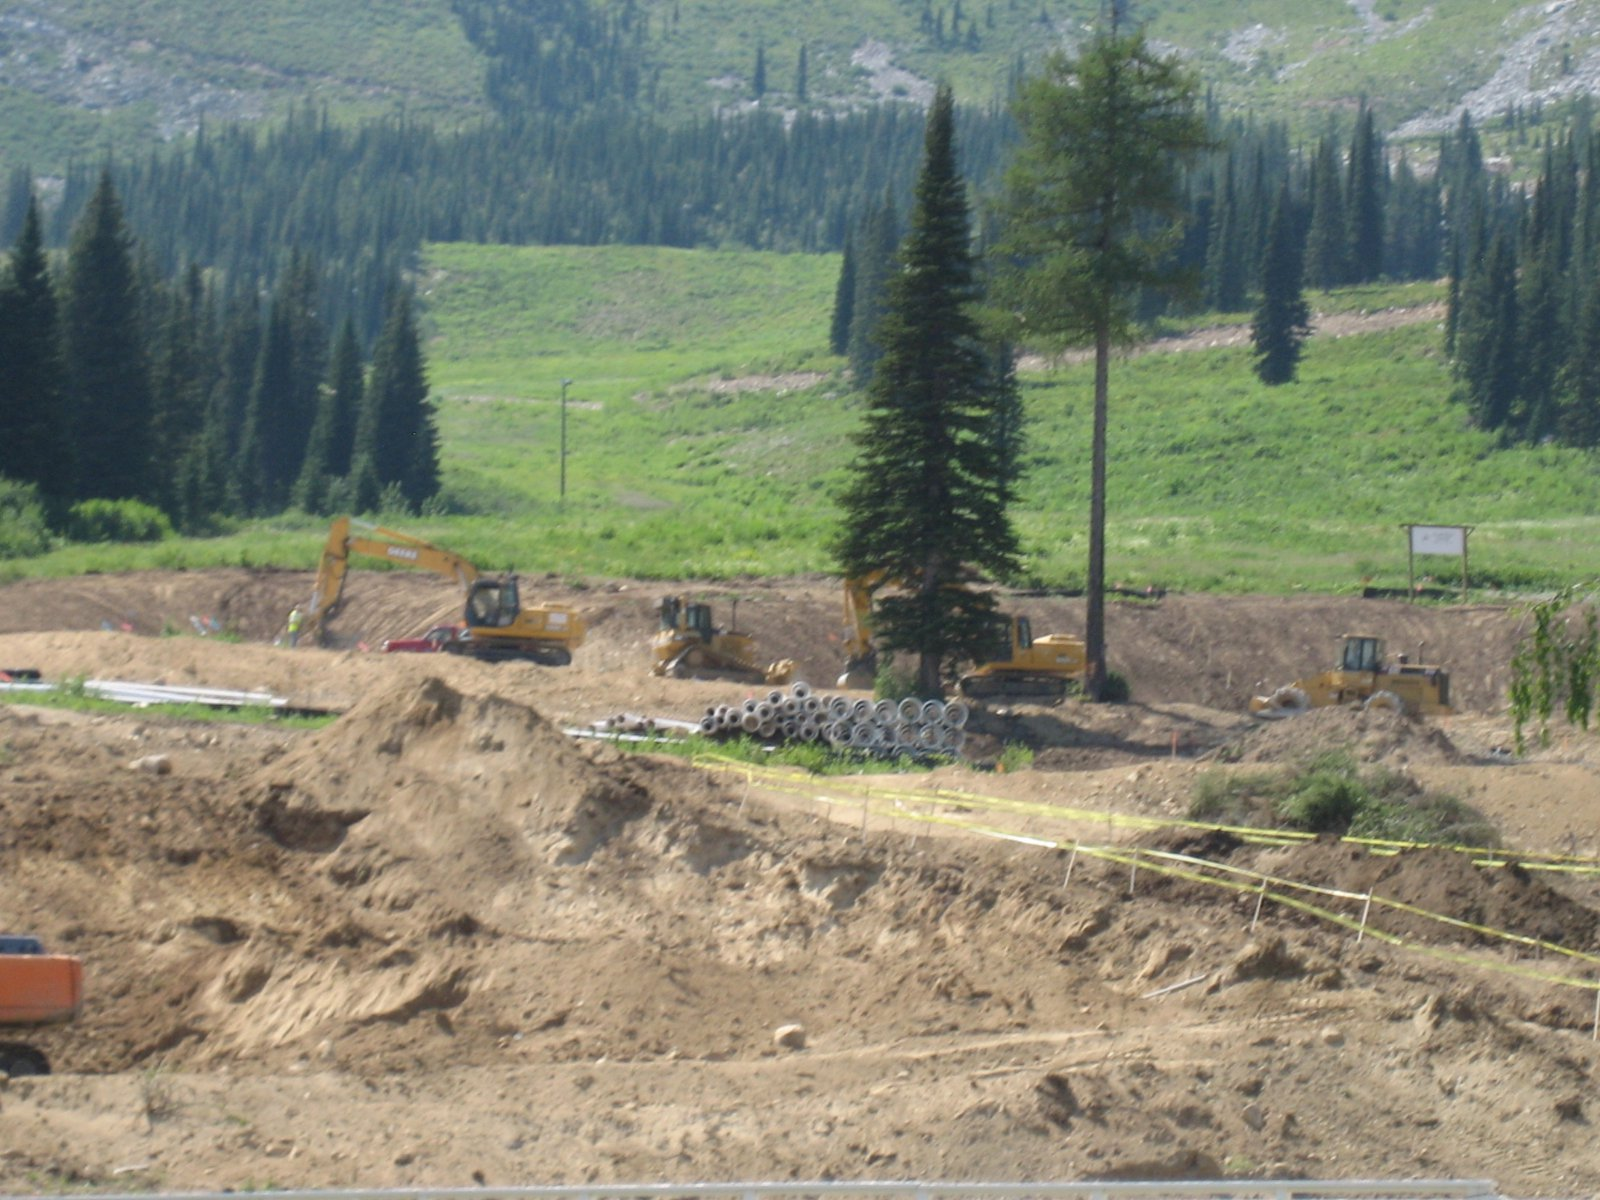 Construction at Schweitzer Mountain Resort, Summer 2007 - 5 of 8